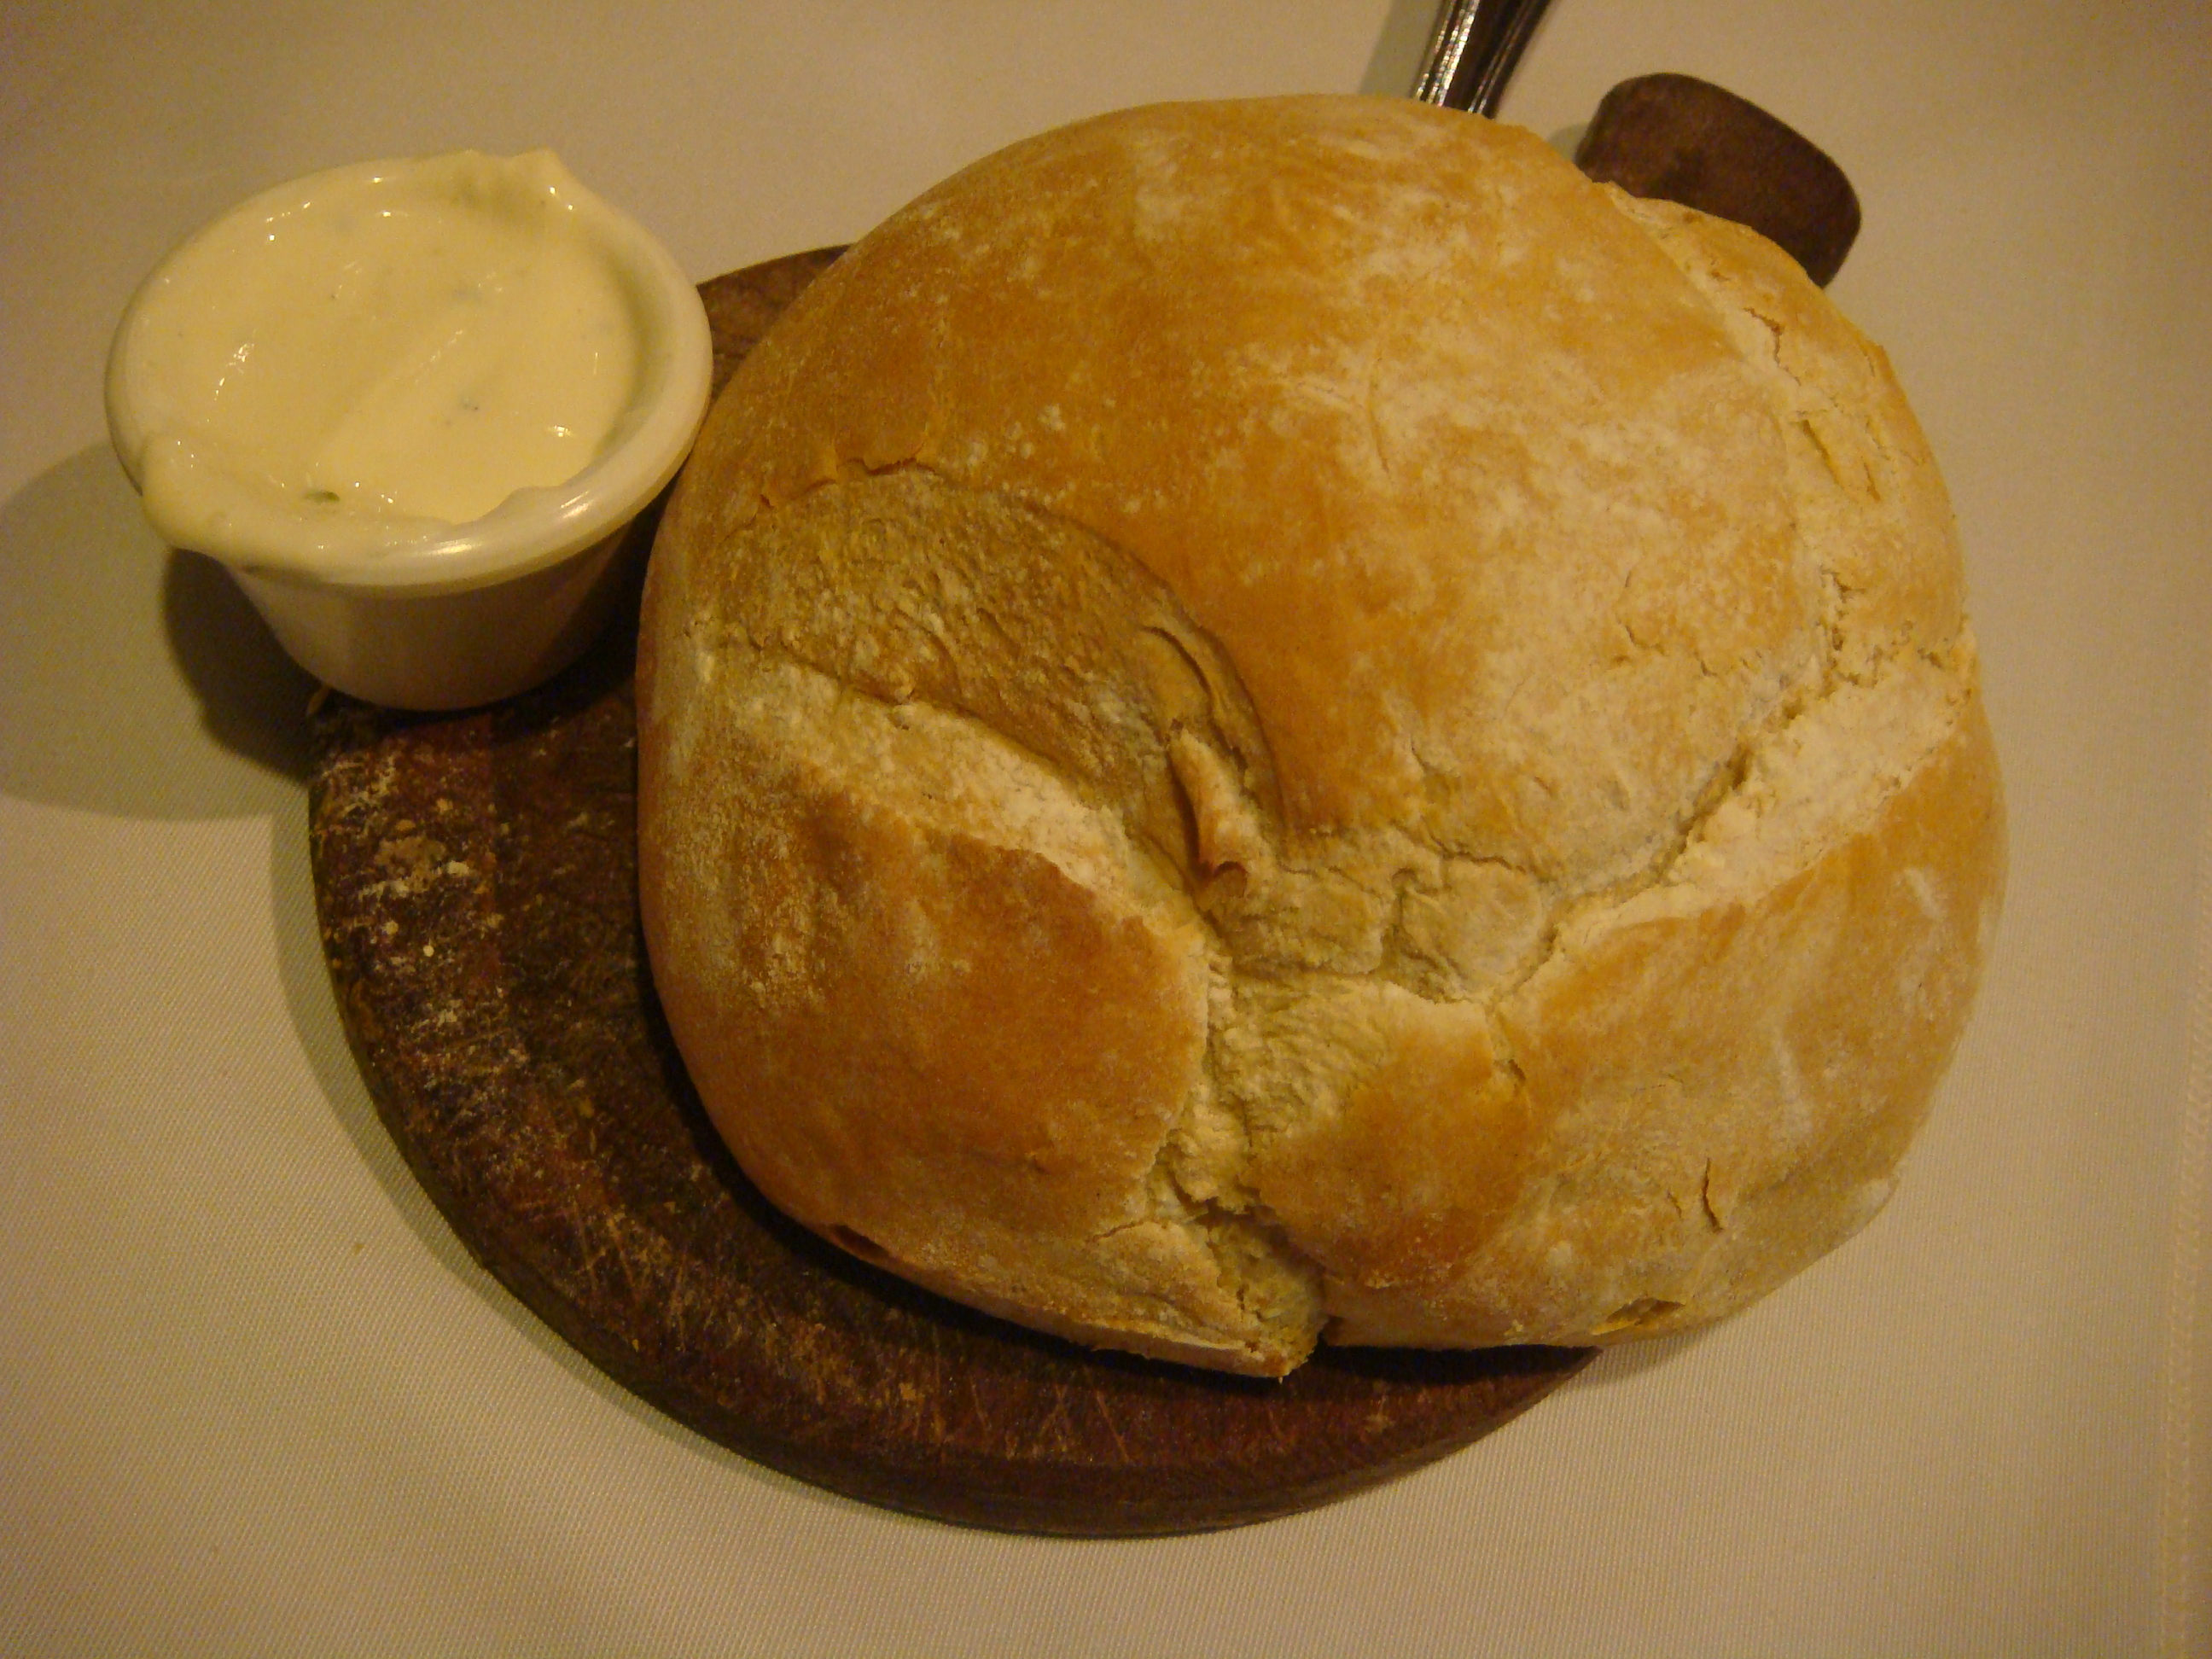 Freshly-baked homemade bread